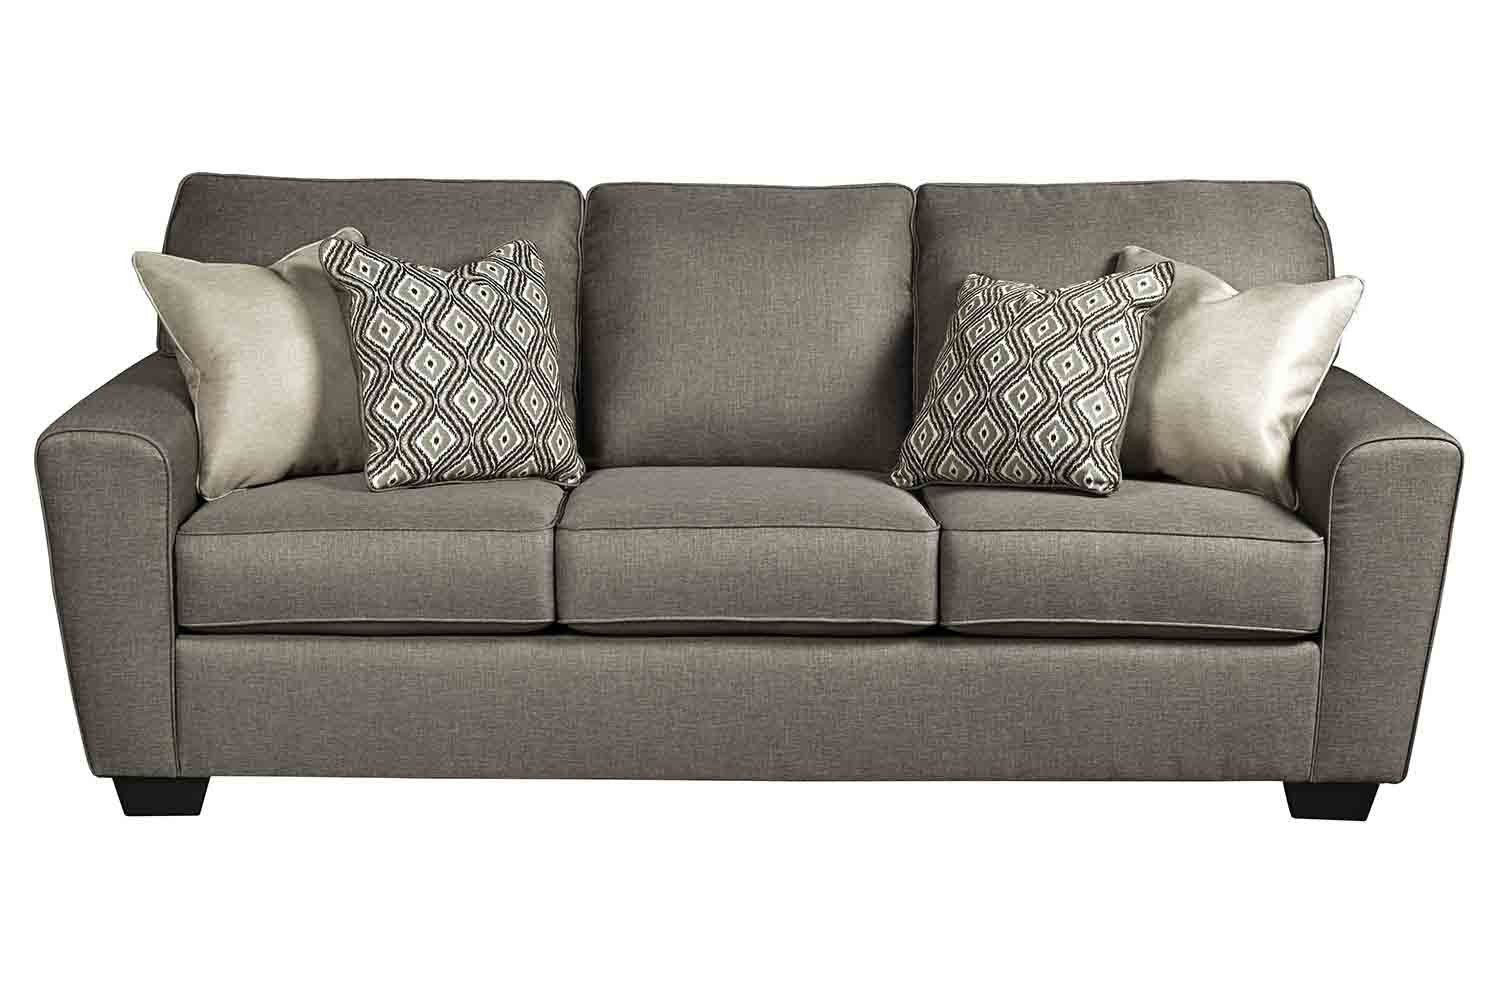 how to clean foam sofa cushions convertible bed grey sectional with chaise nyfu calicho | mor furniture for less